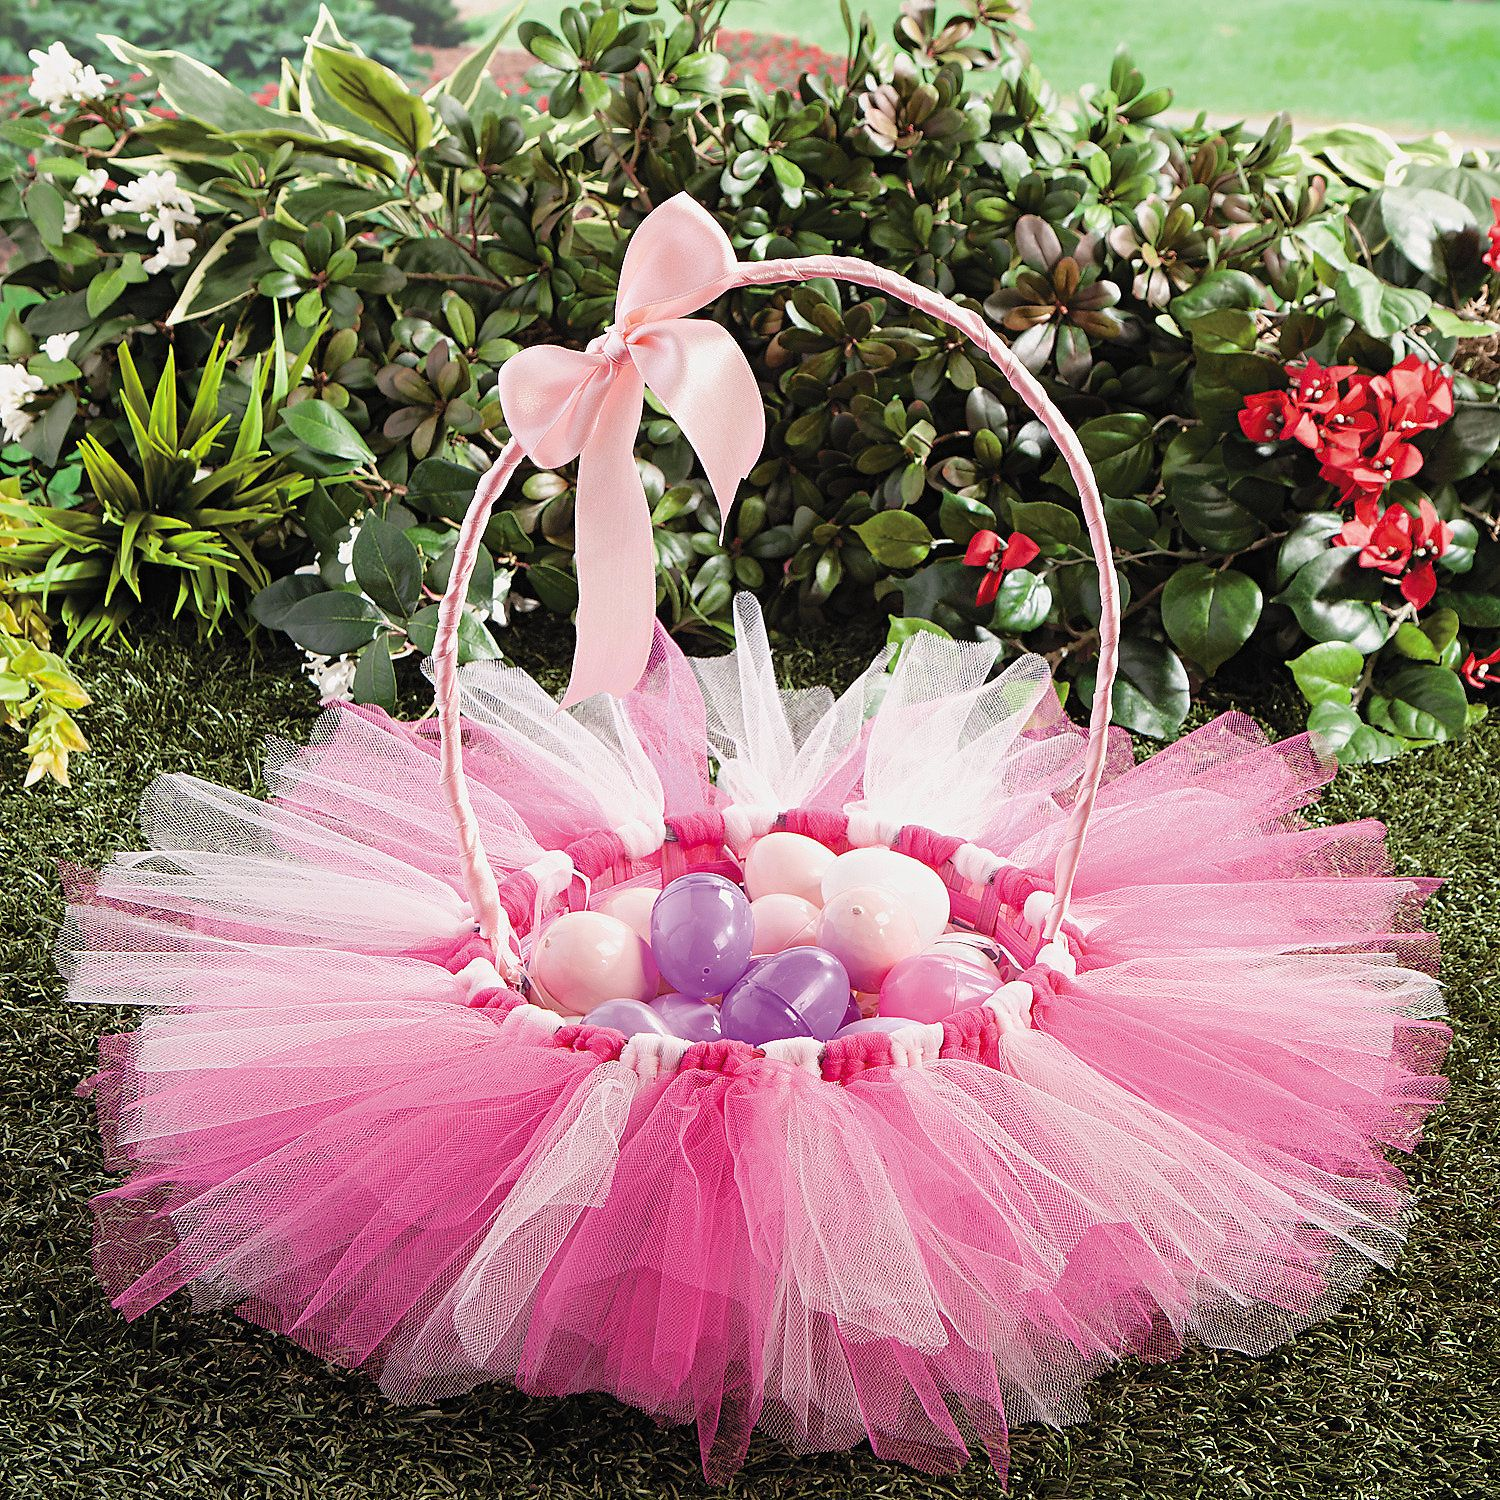 Outdoor easter decorations pinterest - Easter